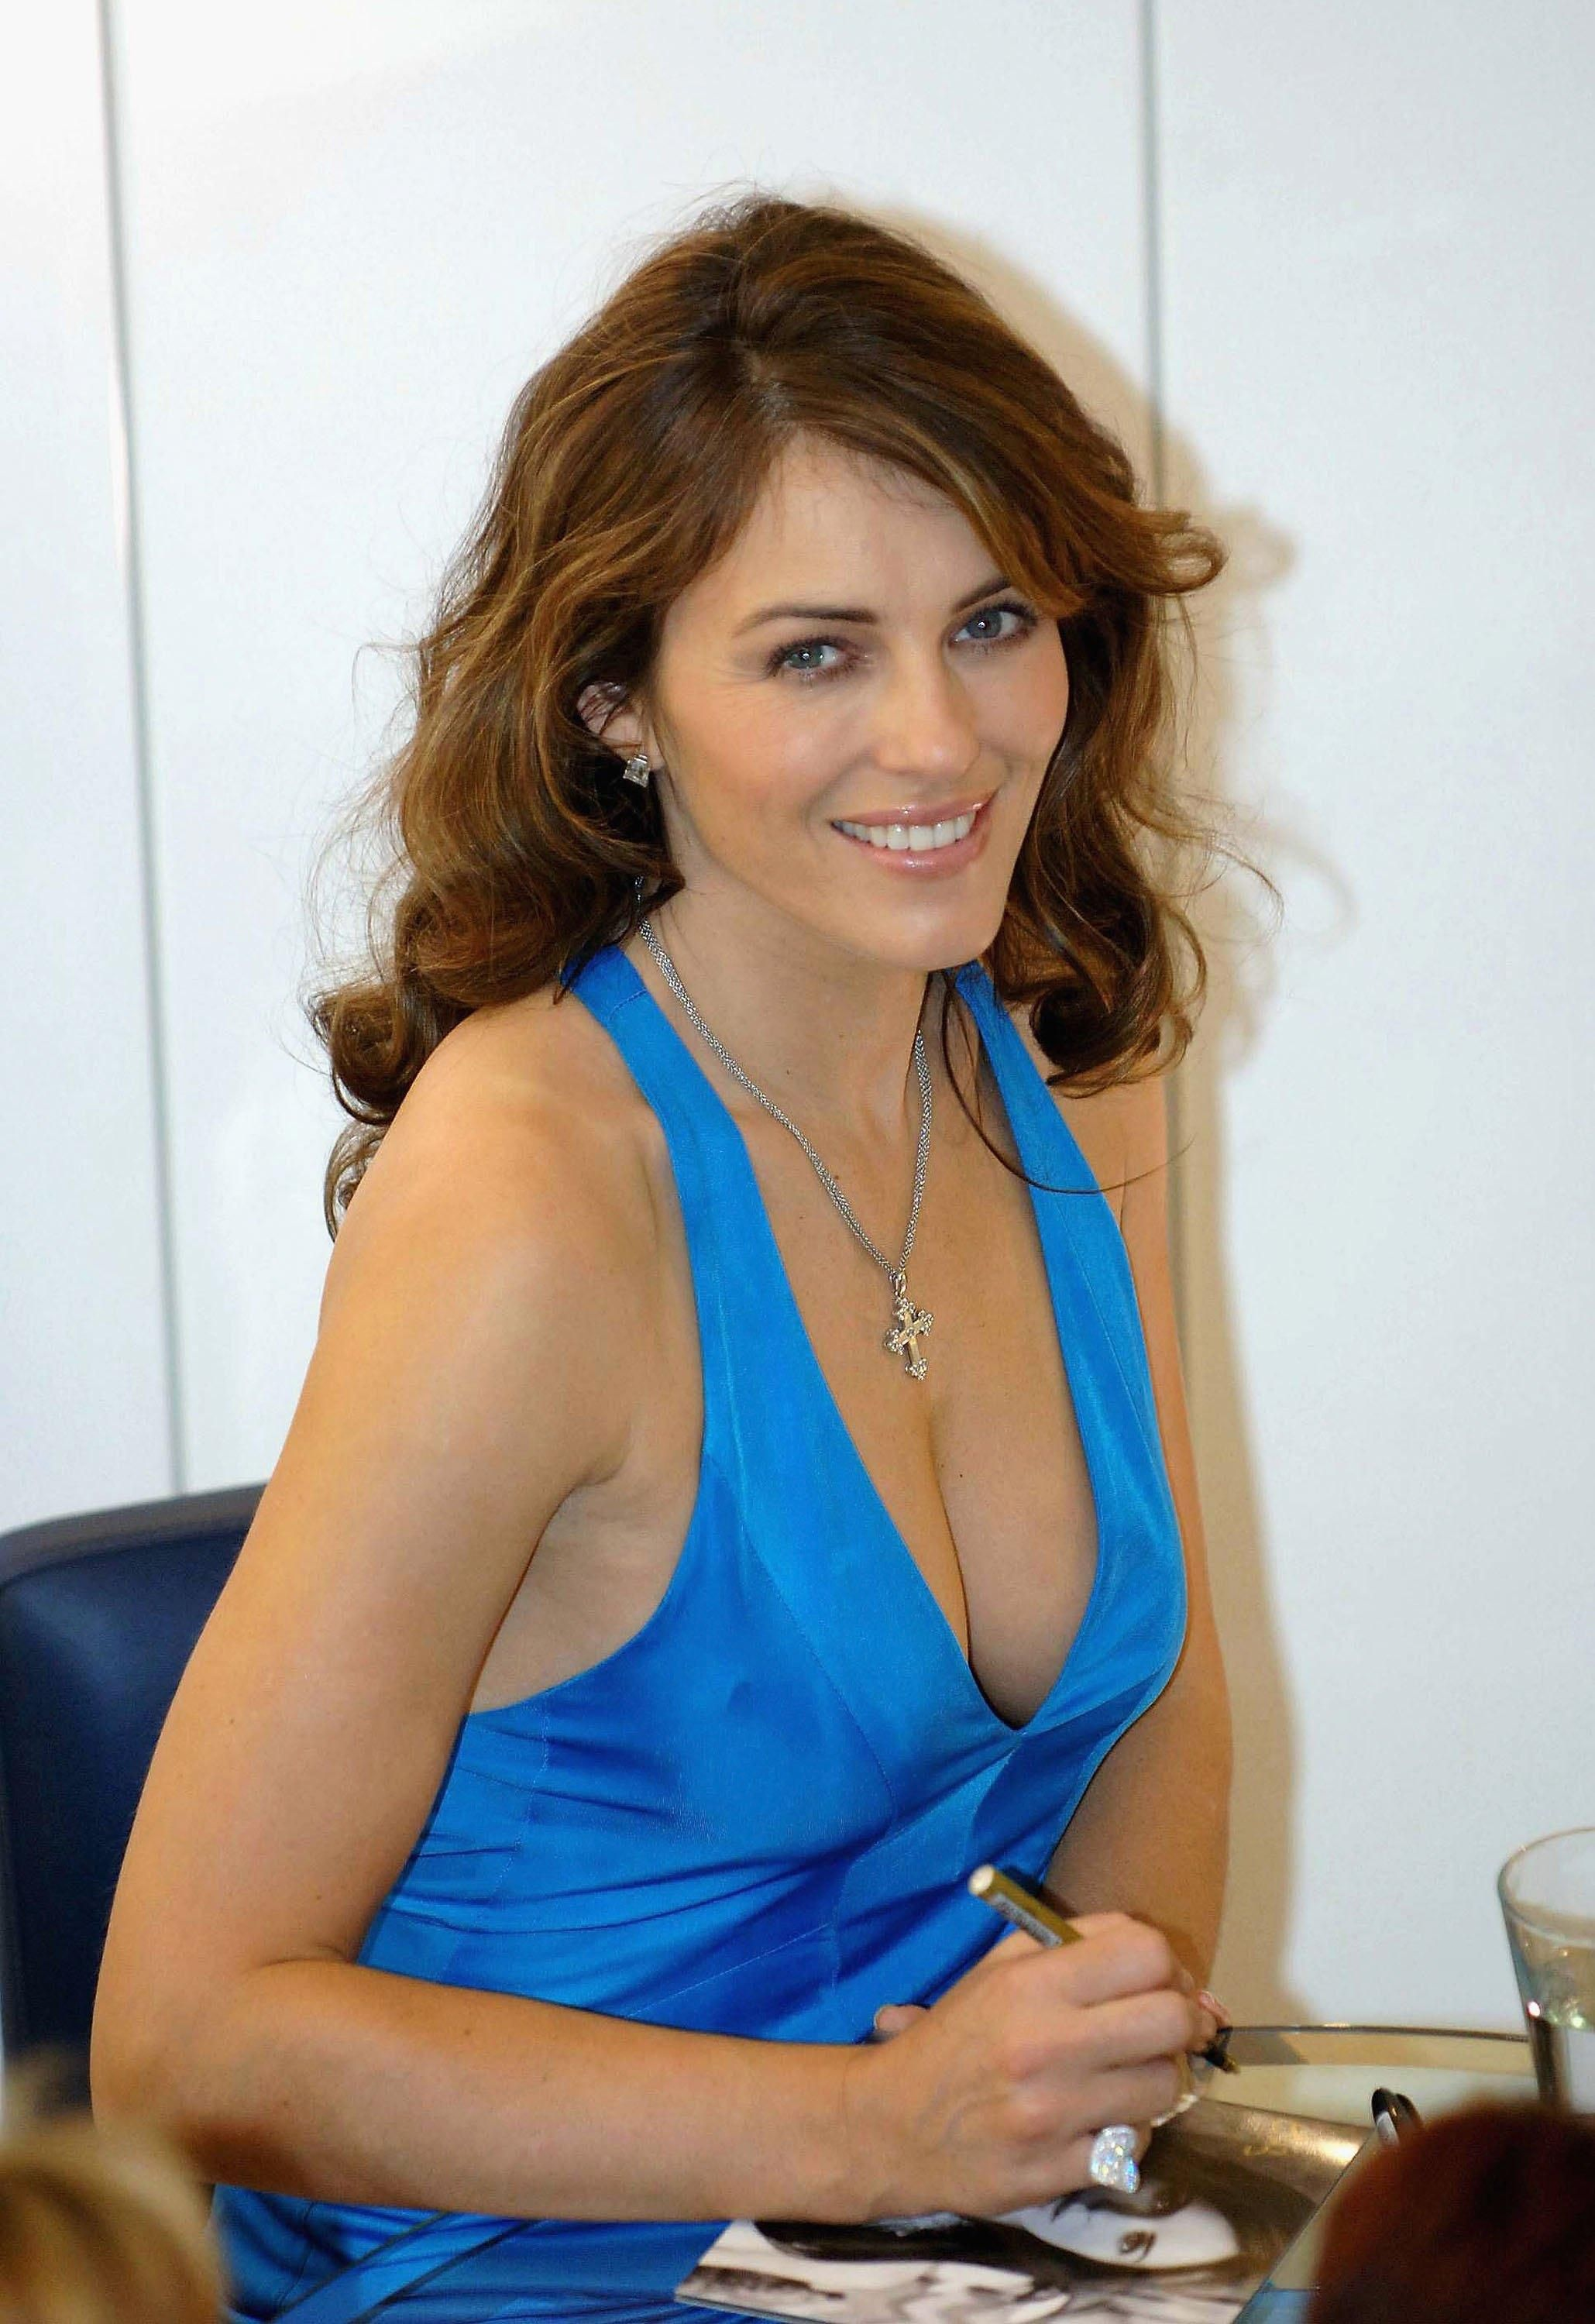 Celebrites Elizabeth Hurley naked (97 photo), Pussy, Is a cute, Selfie, in bikini 2018